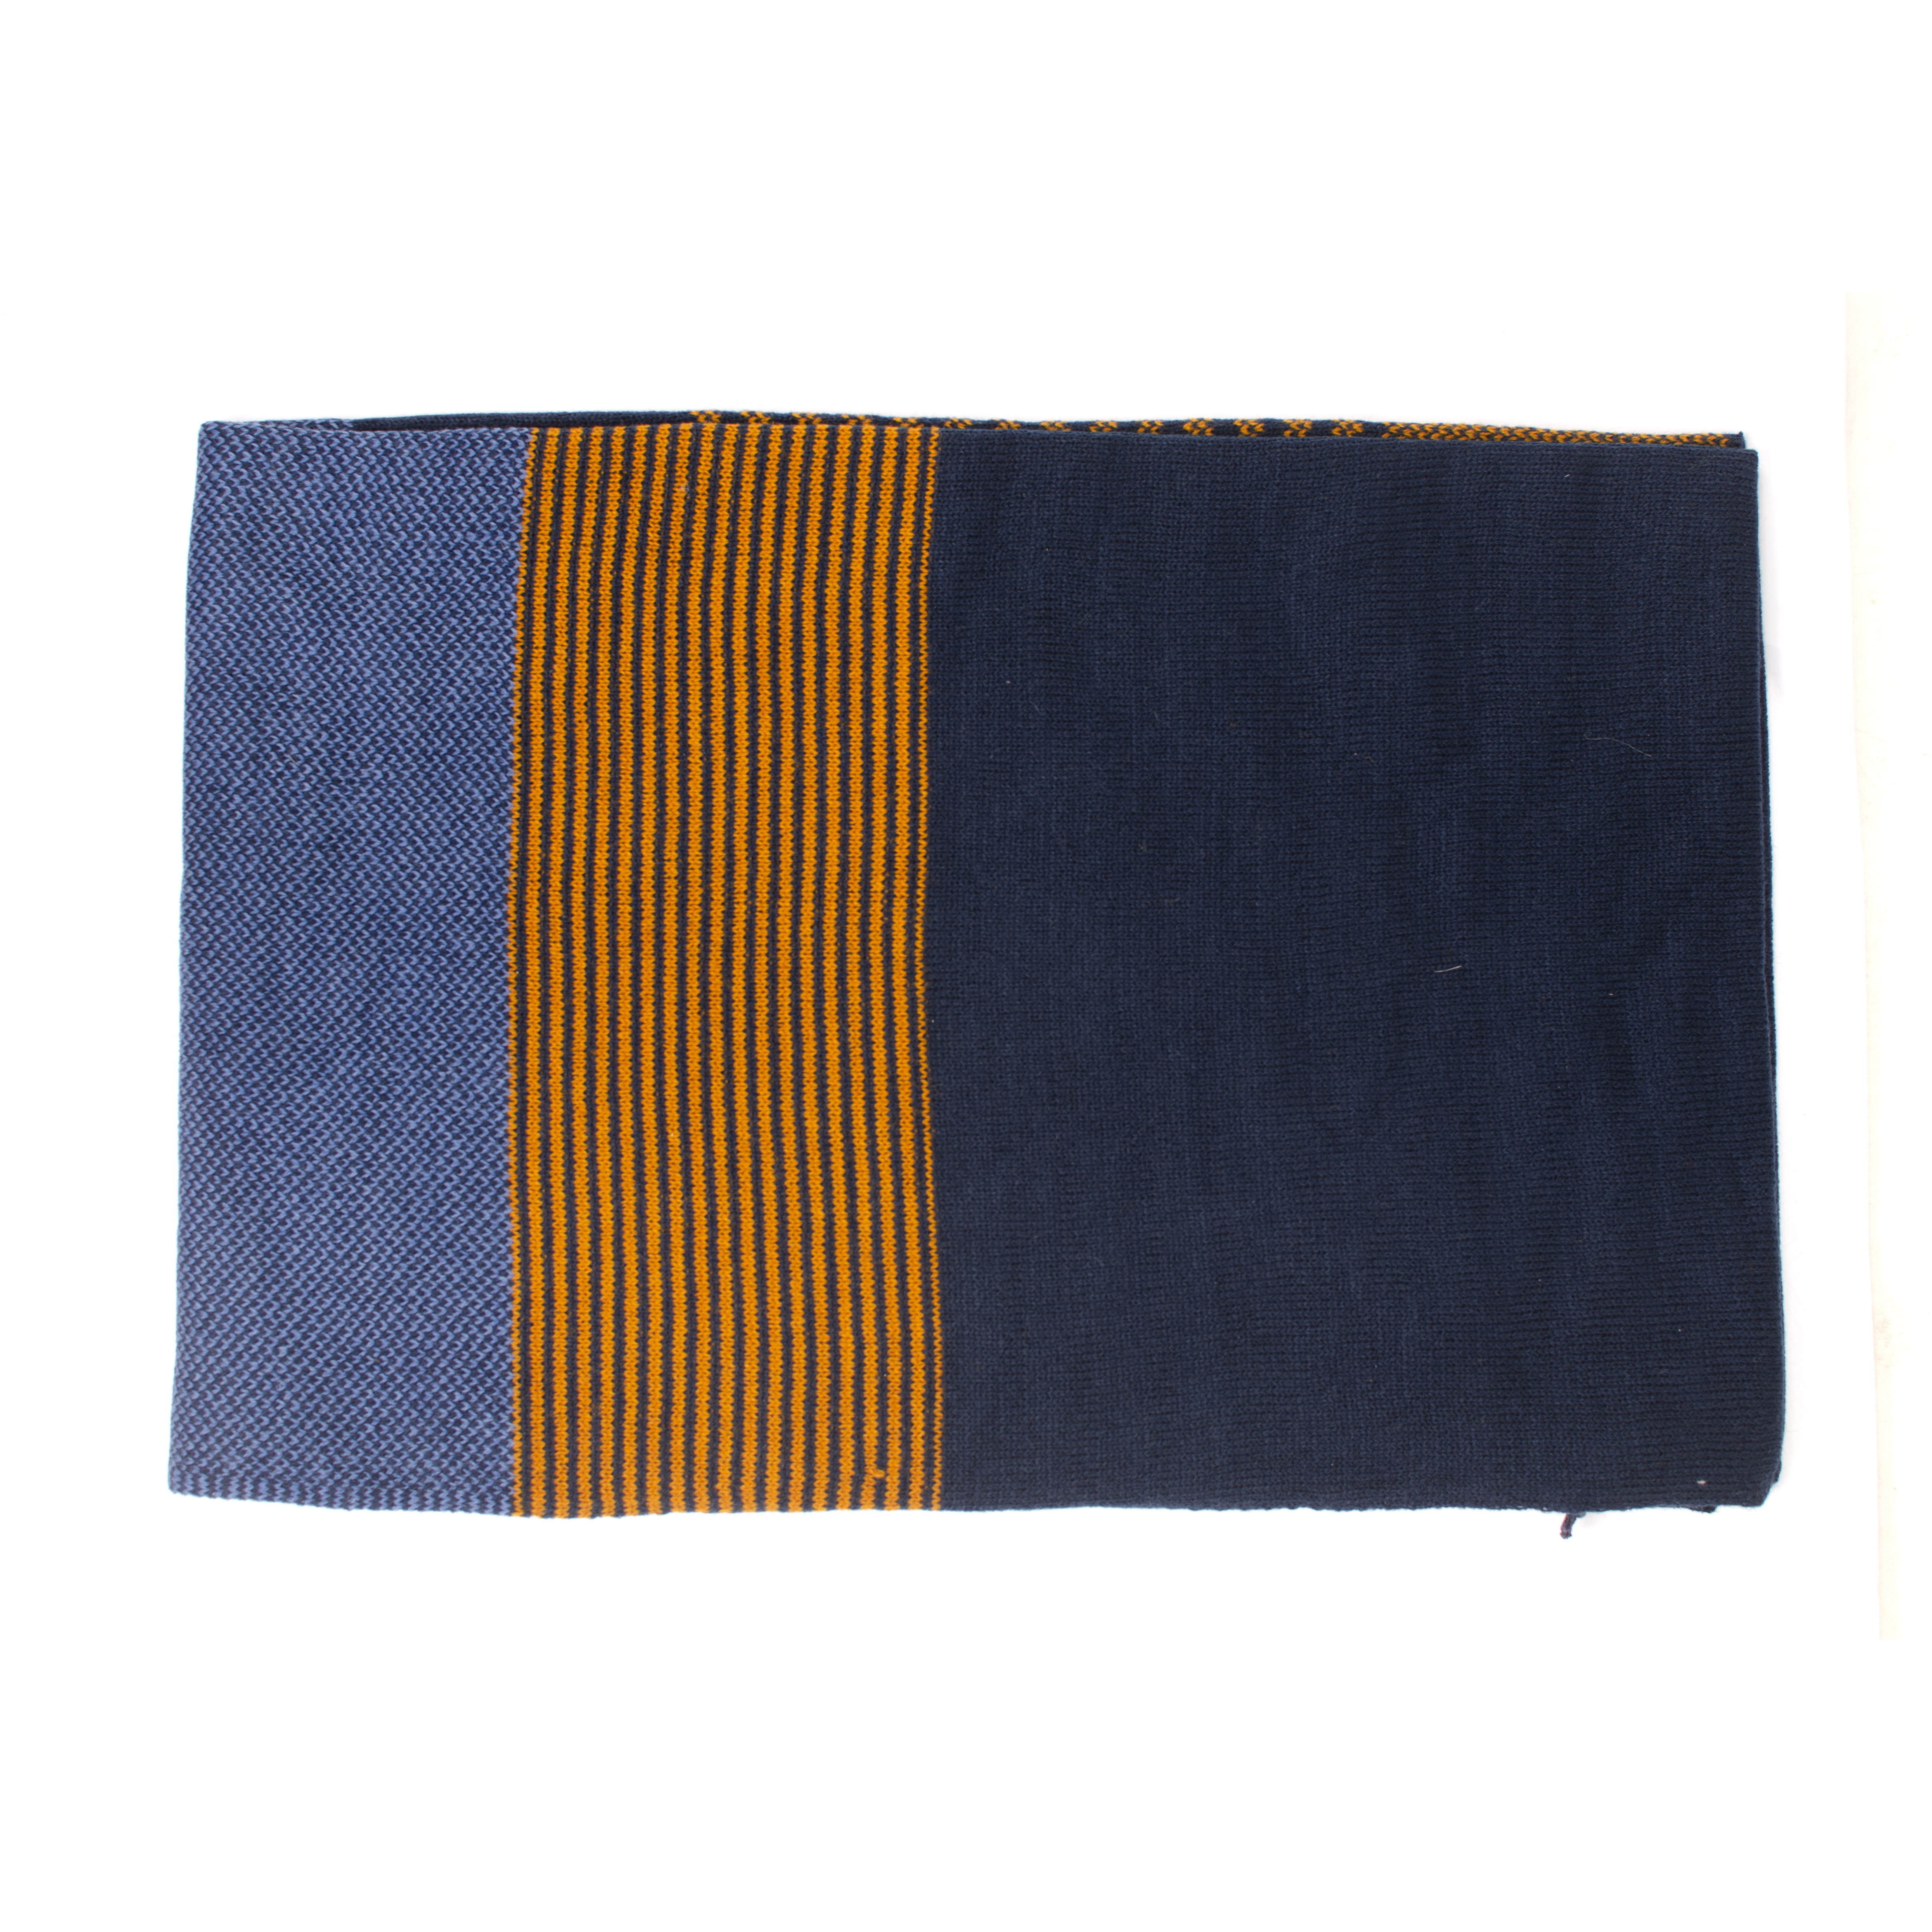 Joah | Scarf knitted striped and blocked